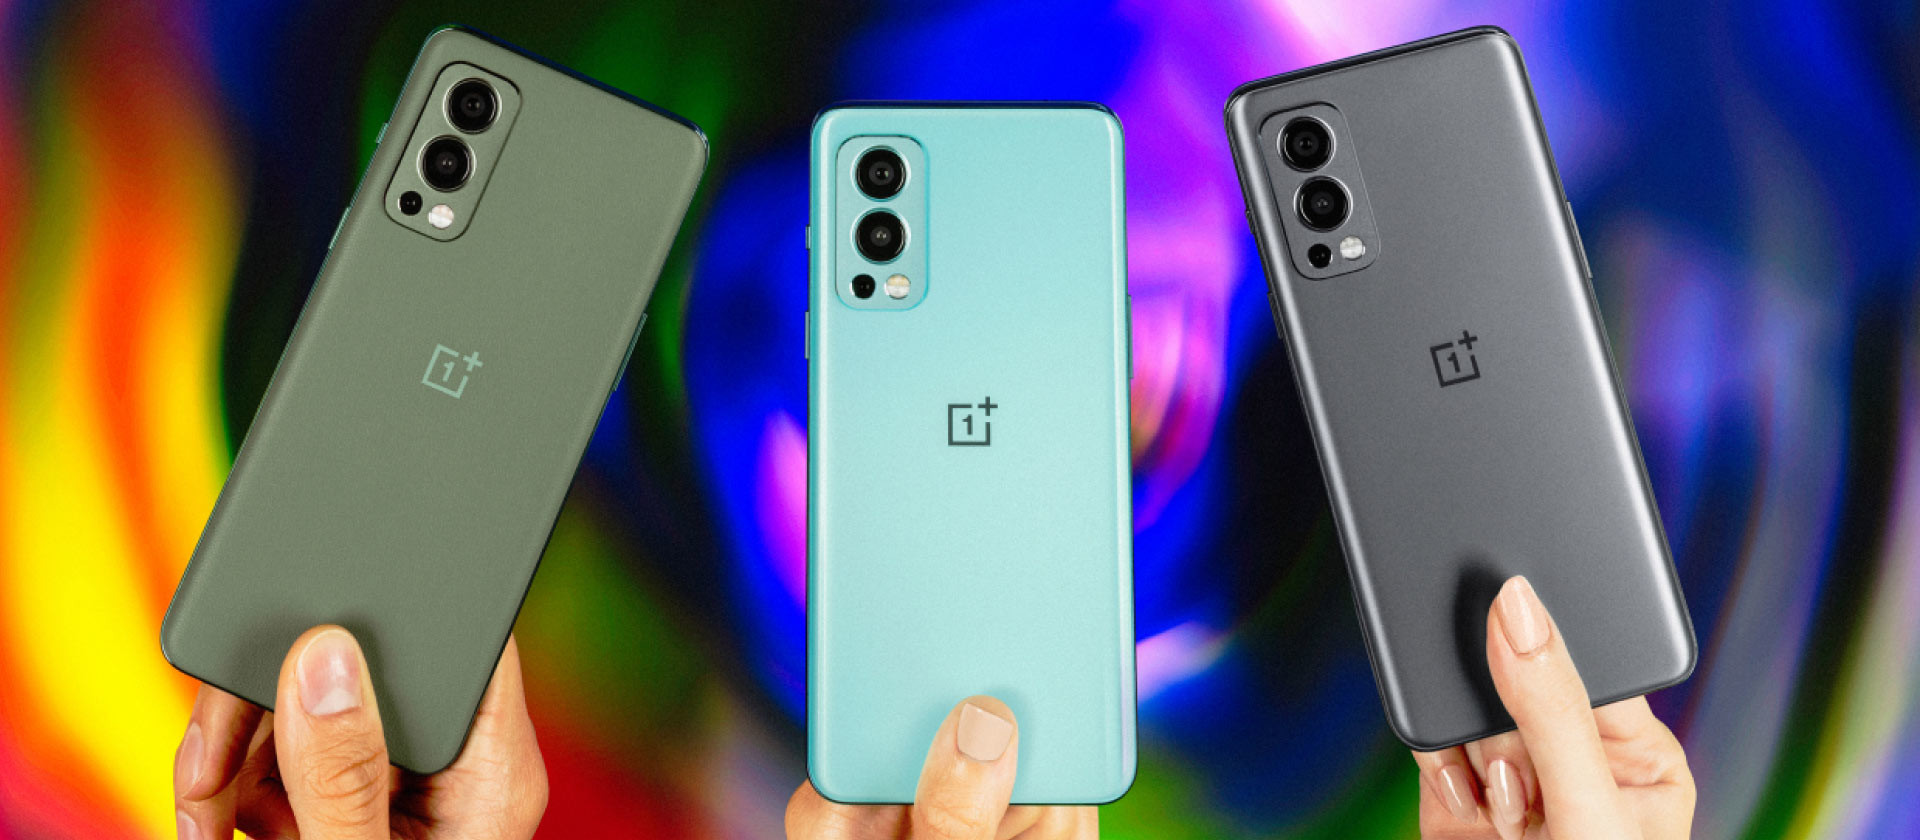 OnePlus Nord 2 5G in Gray Sierra Blue Haze and Green Woods